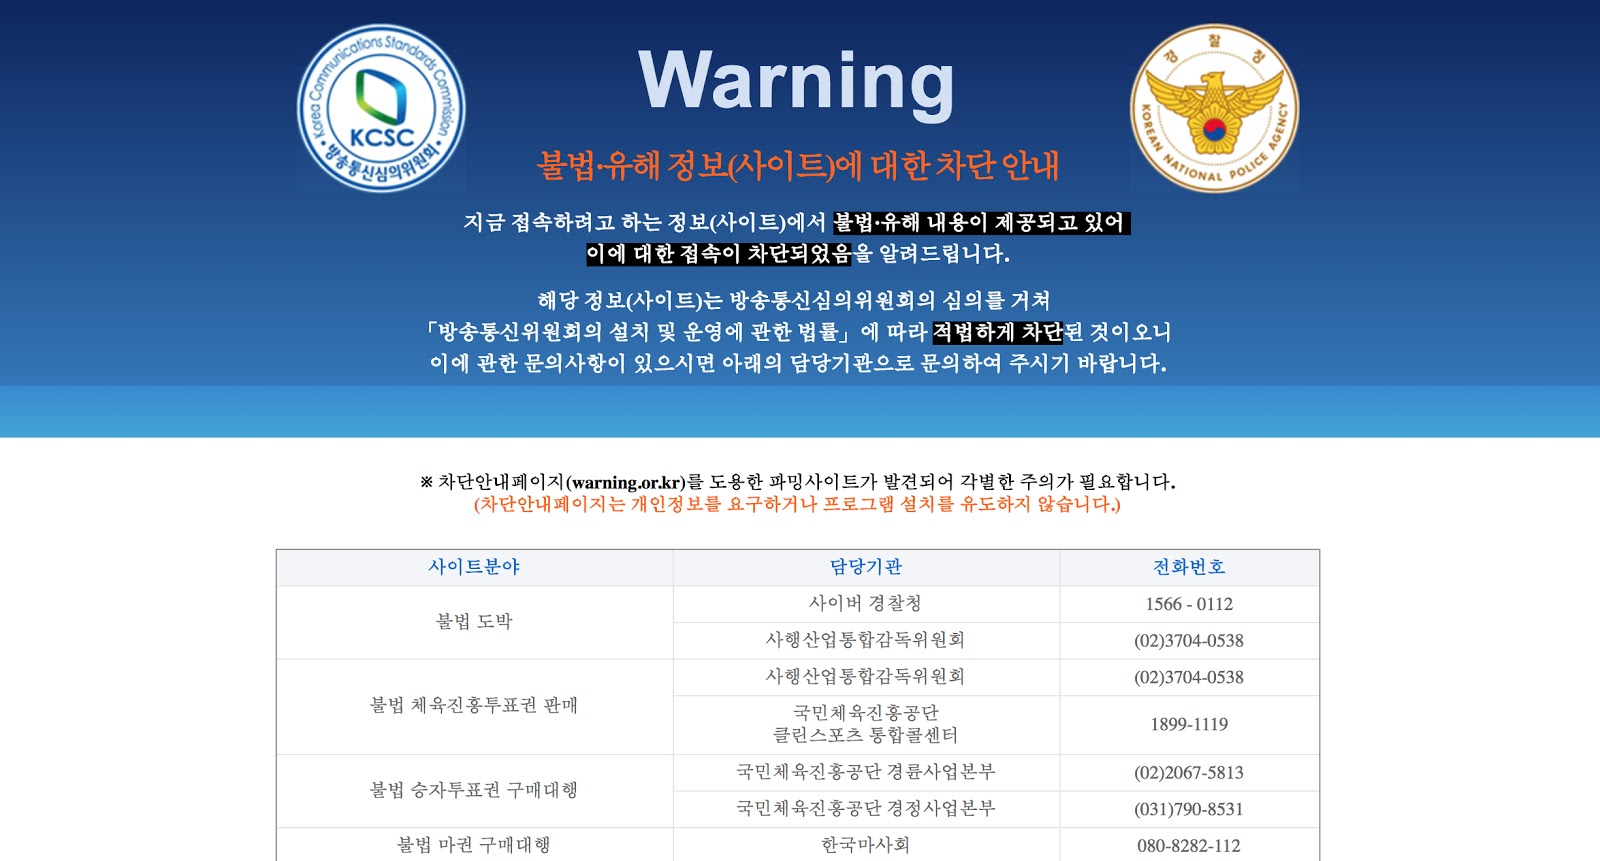 10 things you probably didnt know were illegal in south korea 7 pornography biocorpaavc Images